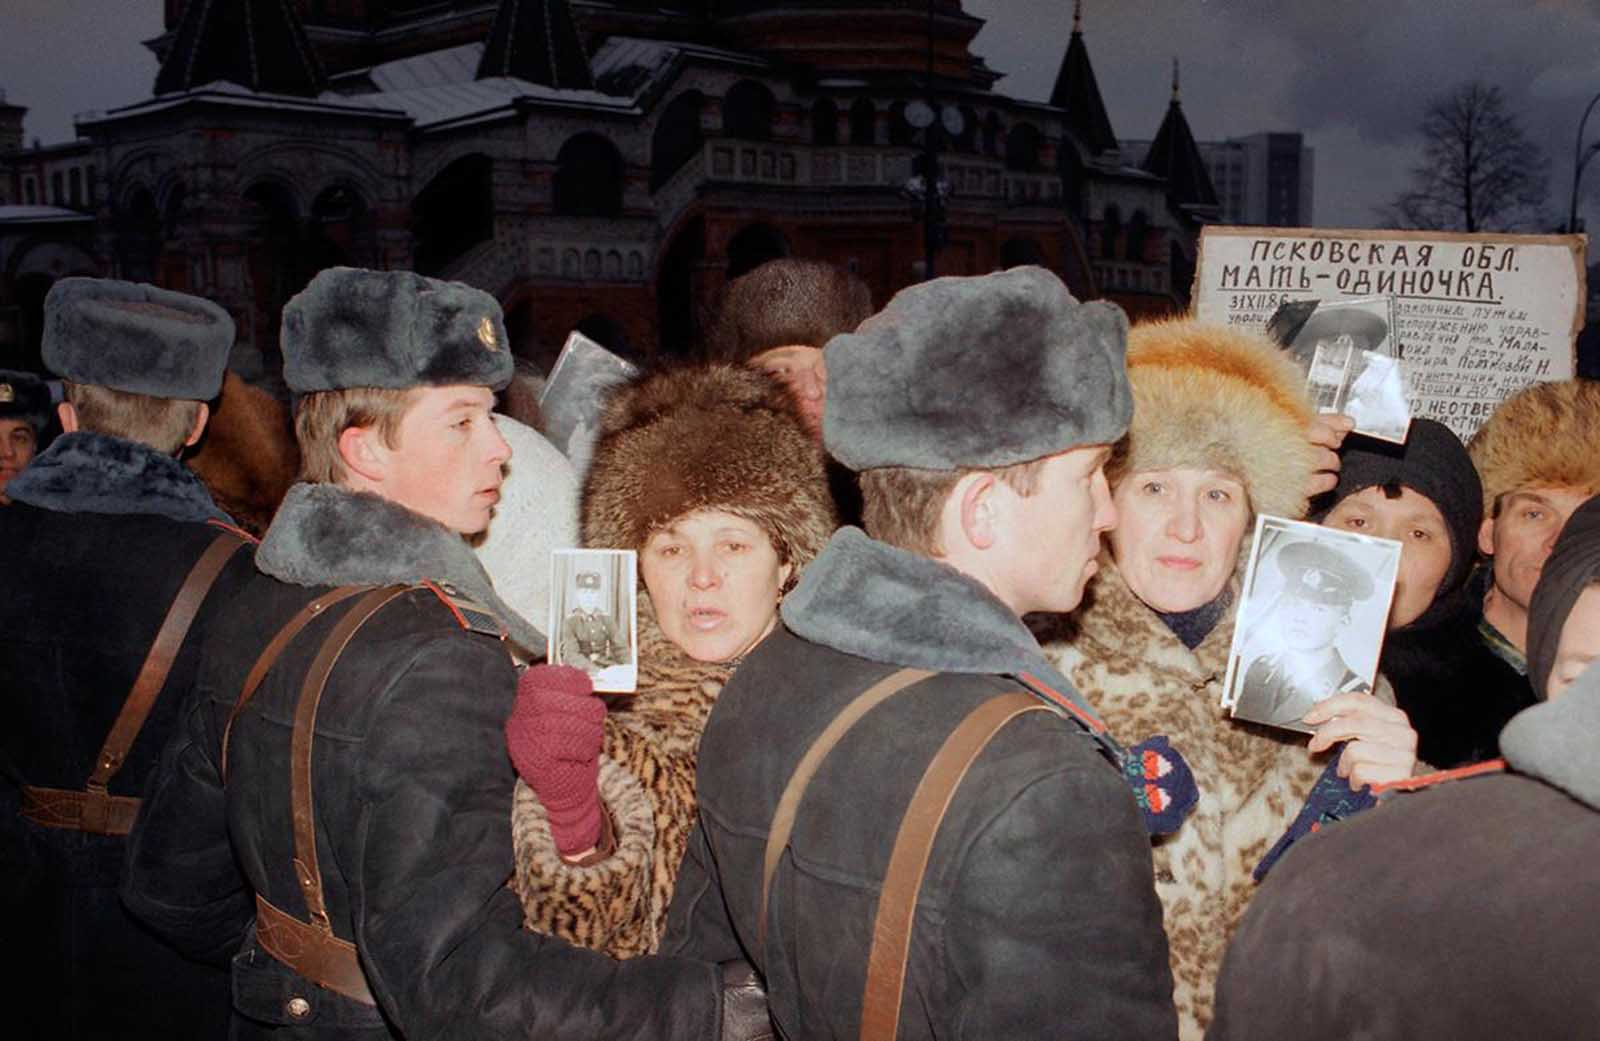 Soviet mothers who lost their sons in the Red Army are held back by State militia as they hold photographs of their loved ones in Red Square, on Monday, December 24, 1990. A group of about 200 Soviet parents who have all lost sons through ethnic violence and accidents within the Soviet armed services demonstrated outside the Kremlin. 6,000 Soviet service men were killed during 1990.